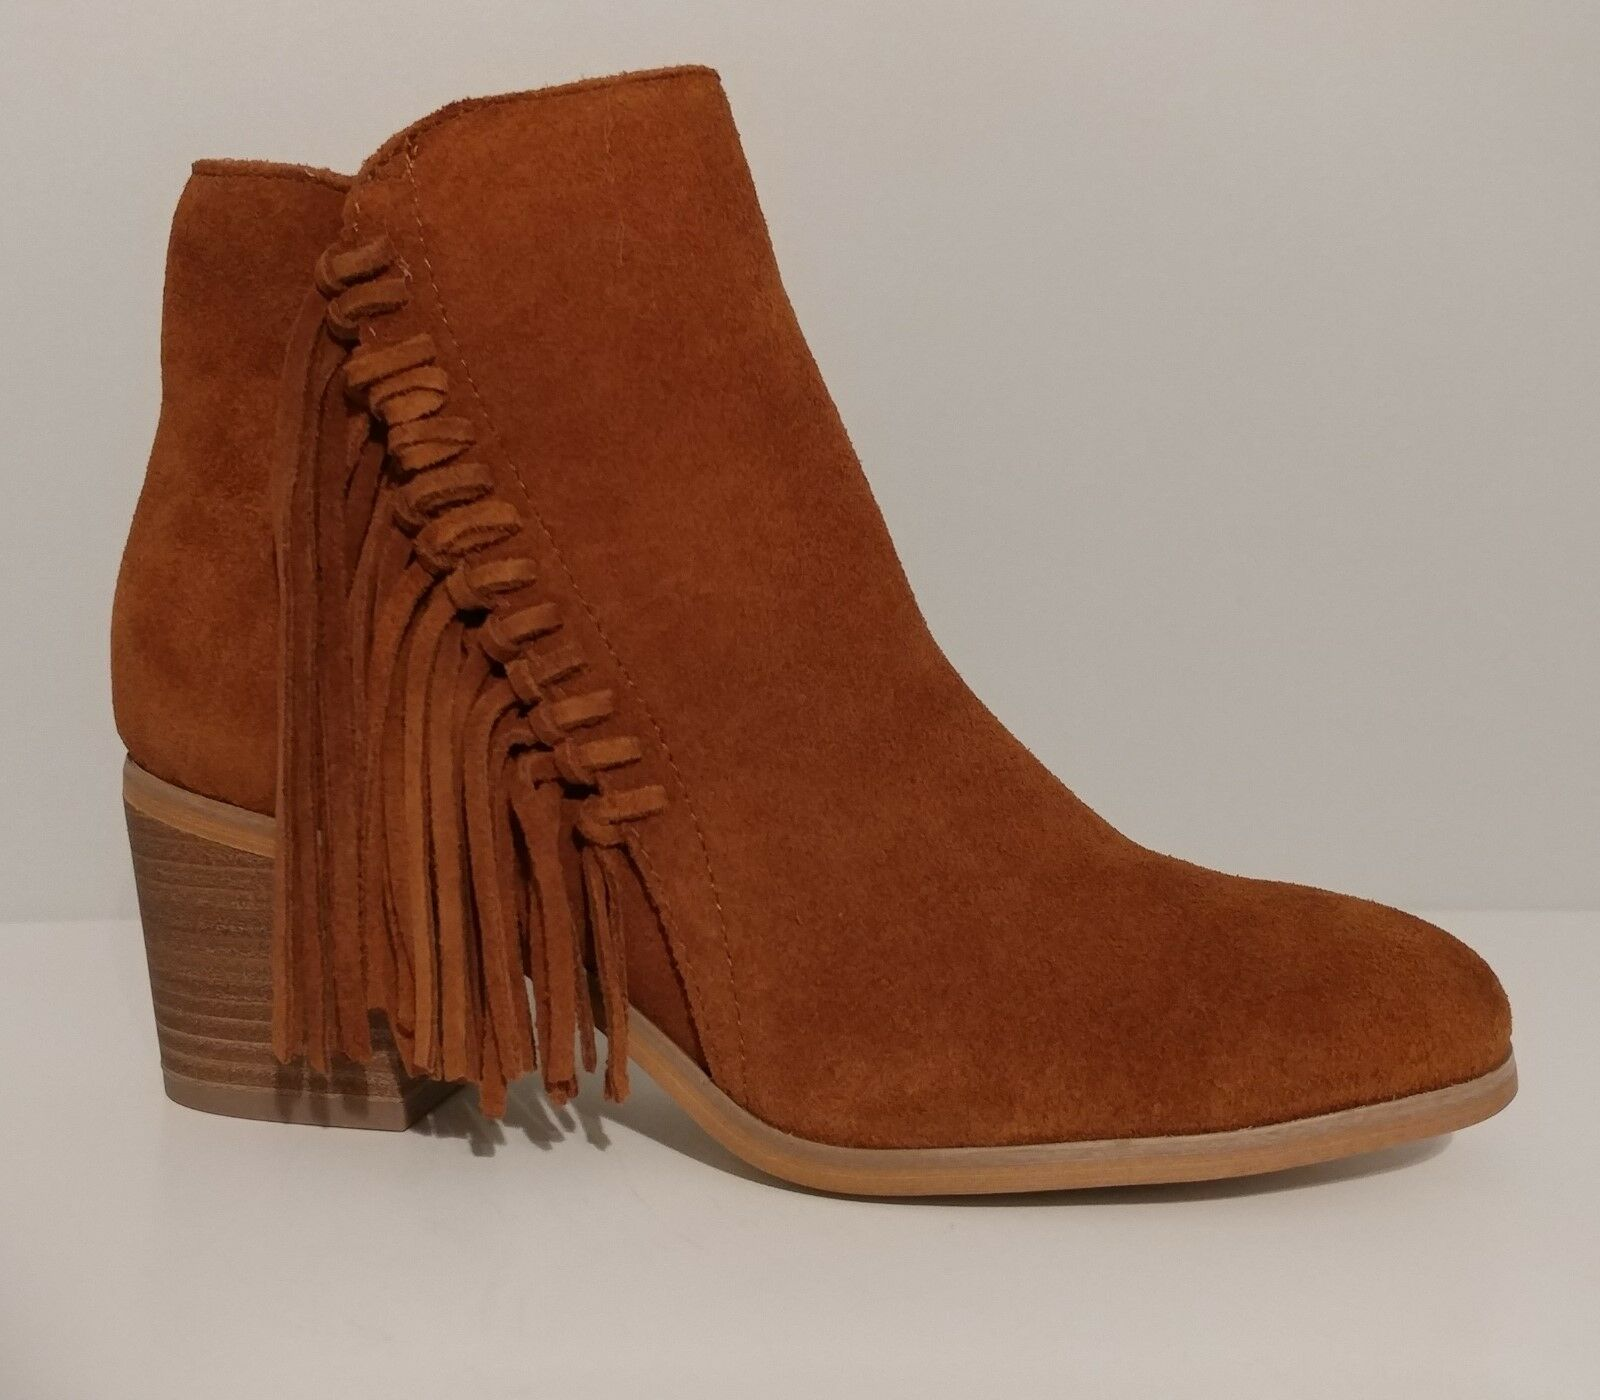 NEW   Kenneth Cole Reaction Brown Leather Boots 2.5  Heels Size 7.5M US 37.5M EU